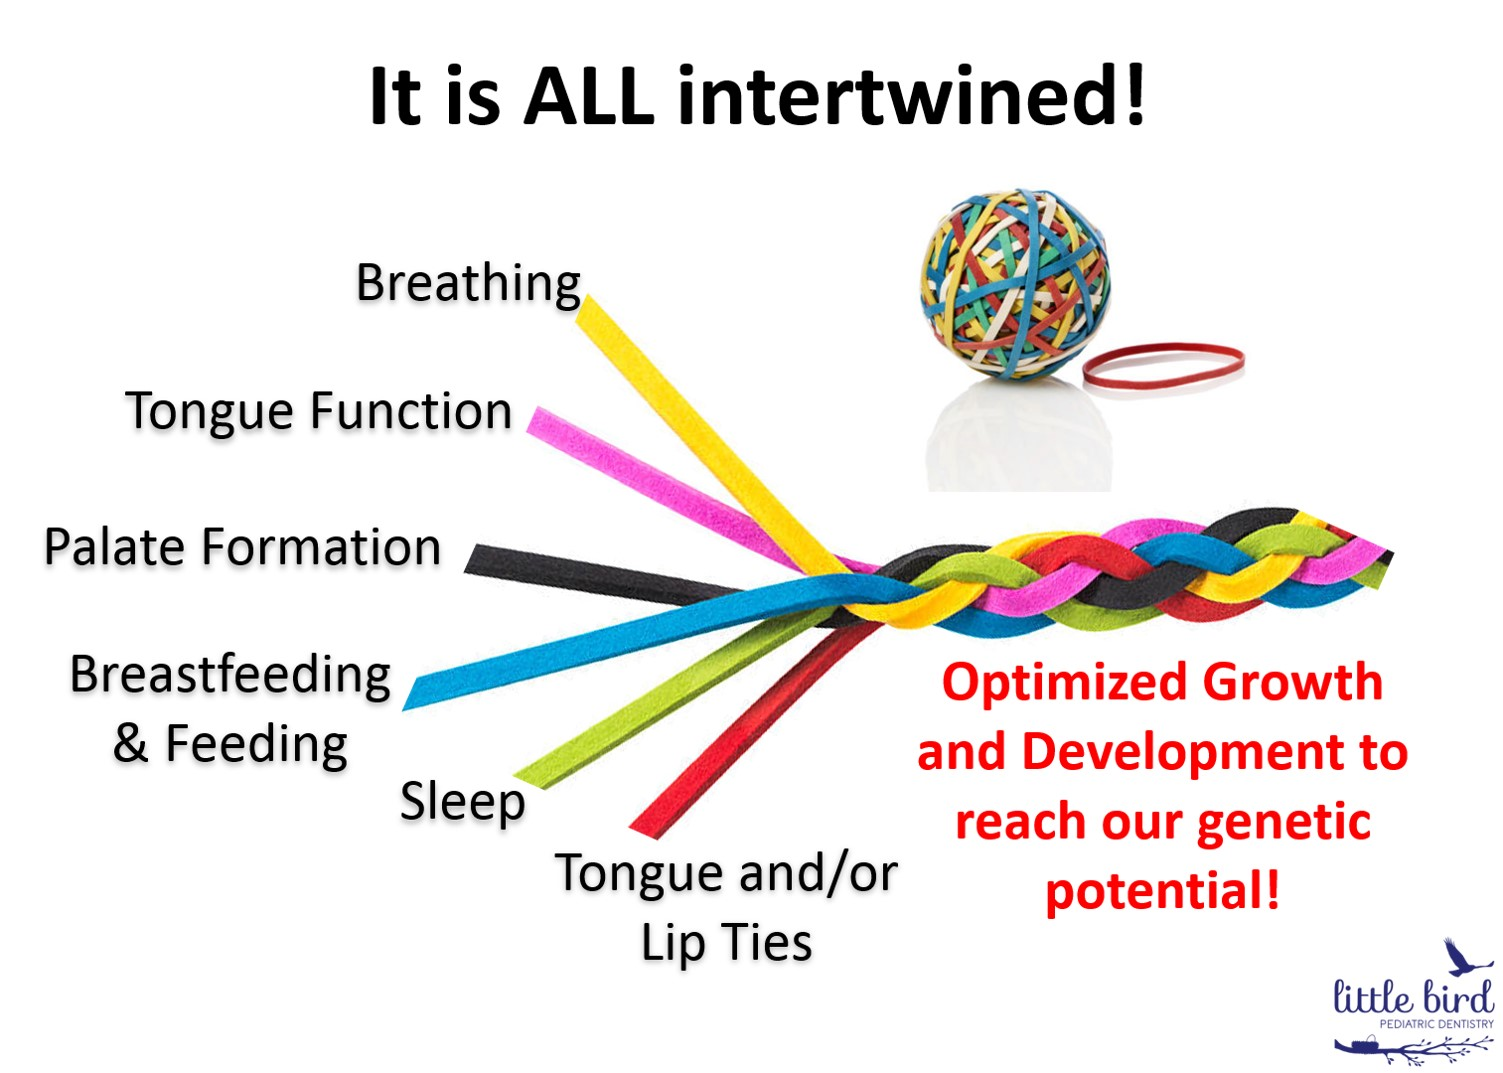 It is all intertwined!